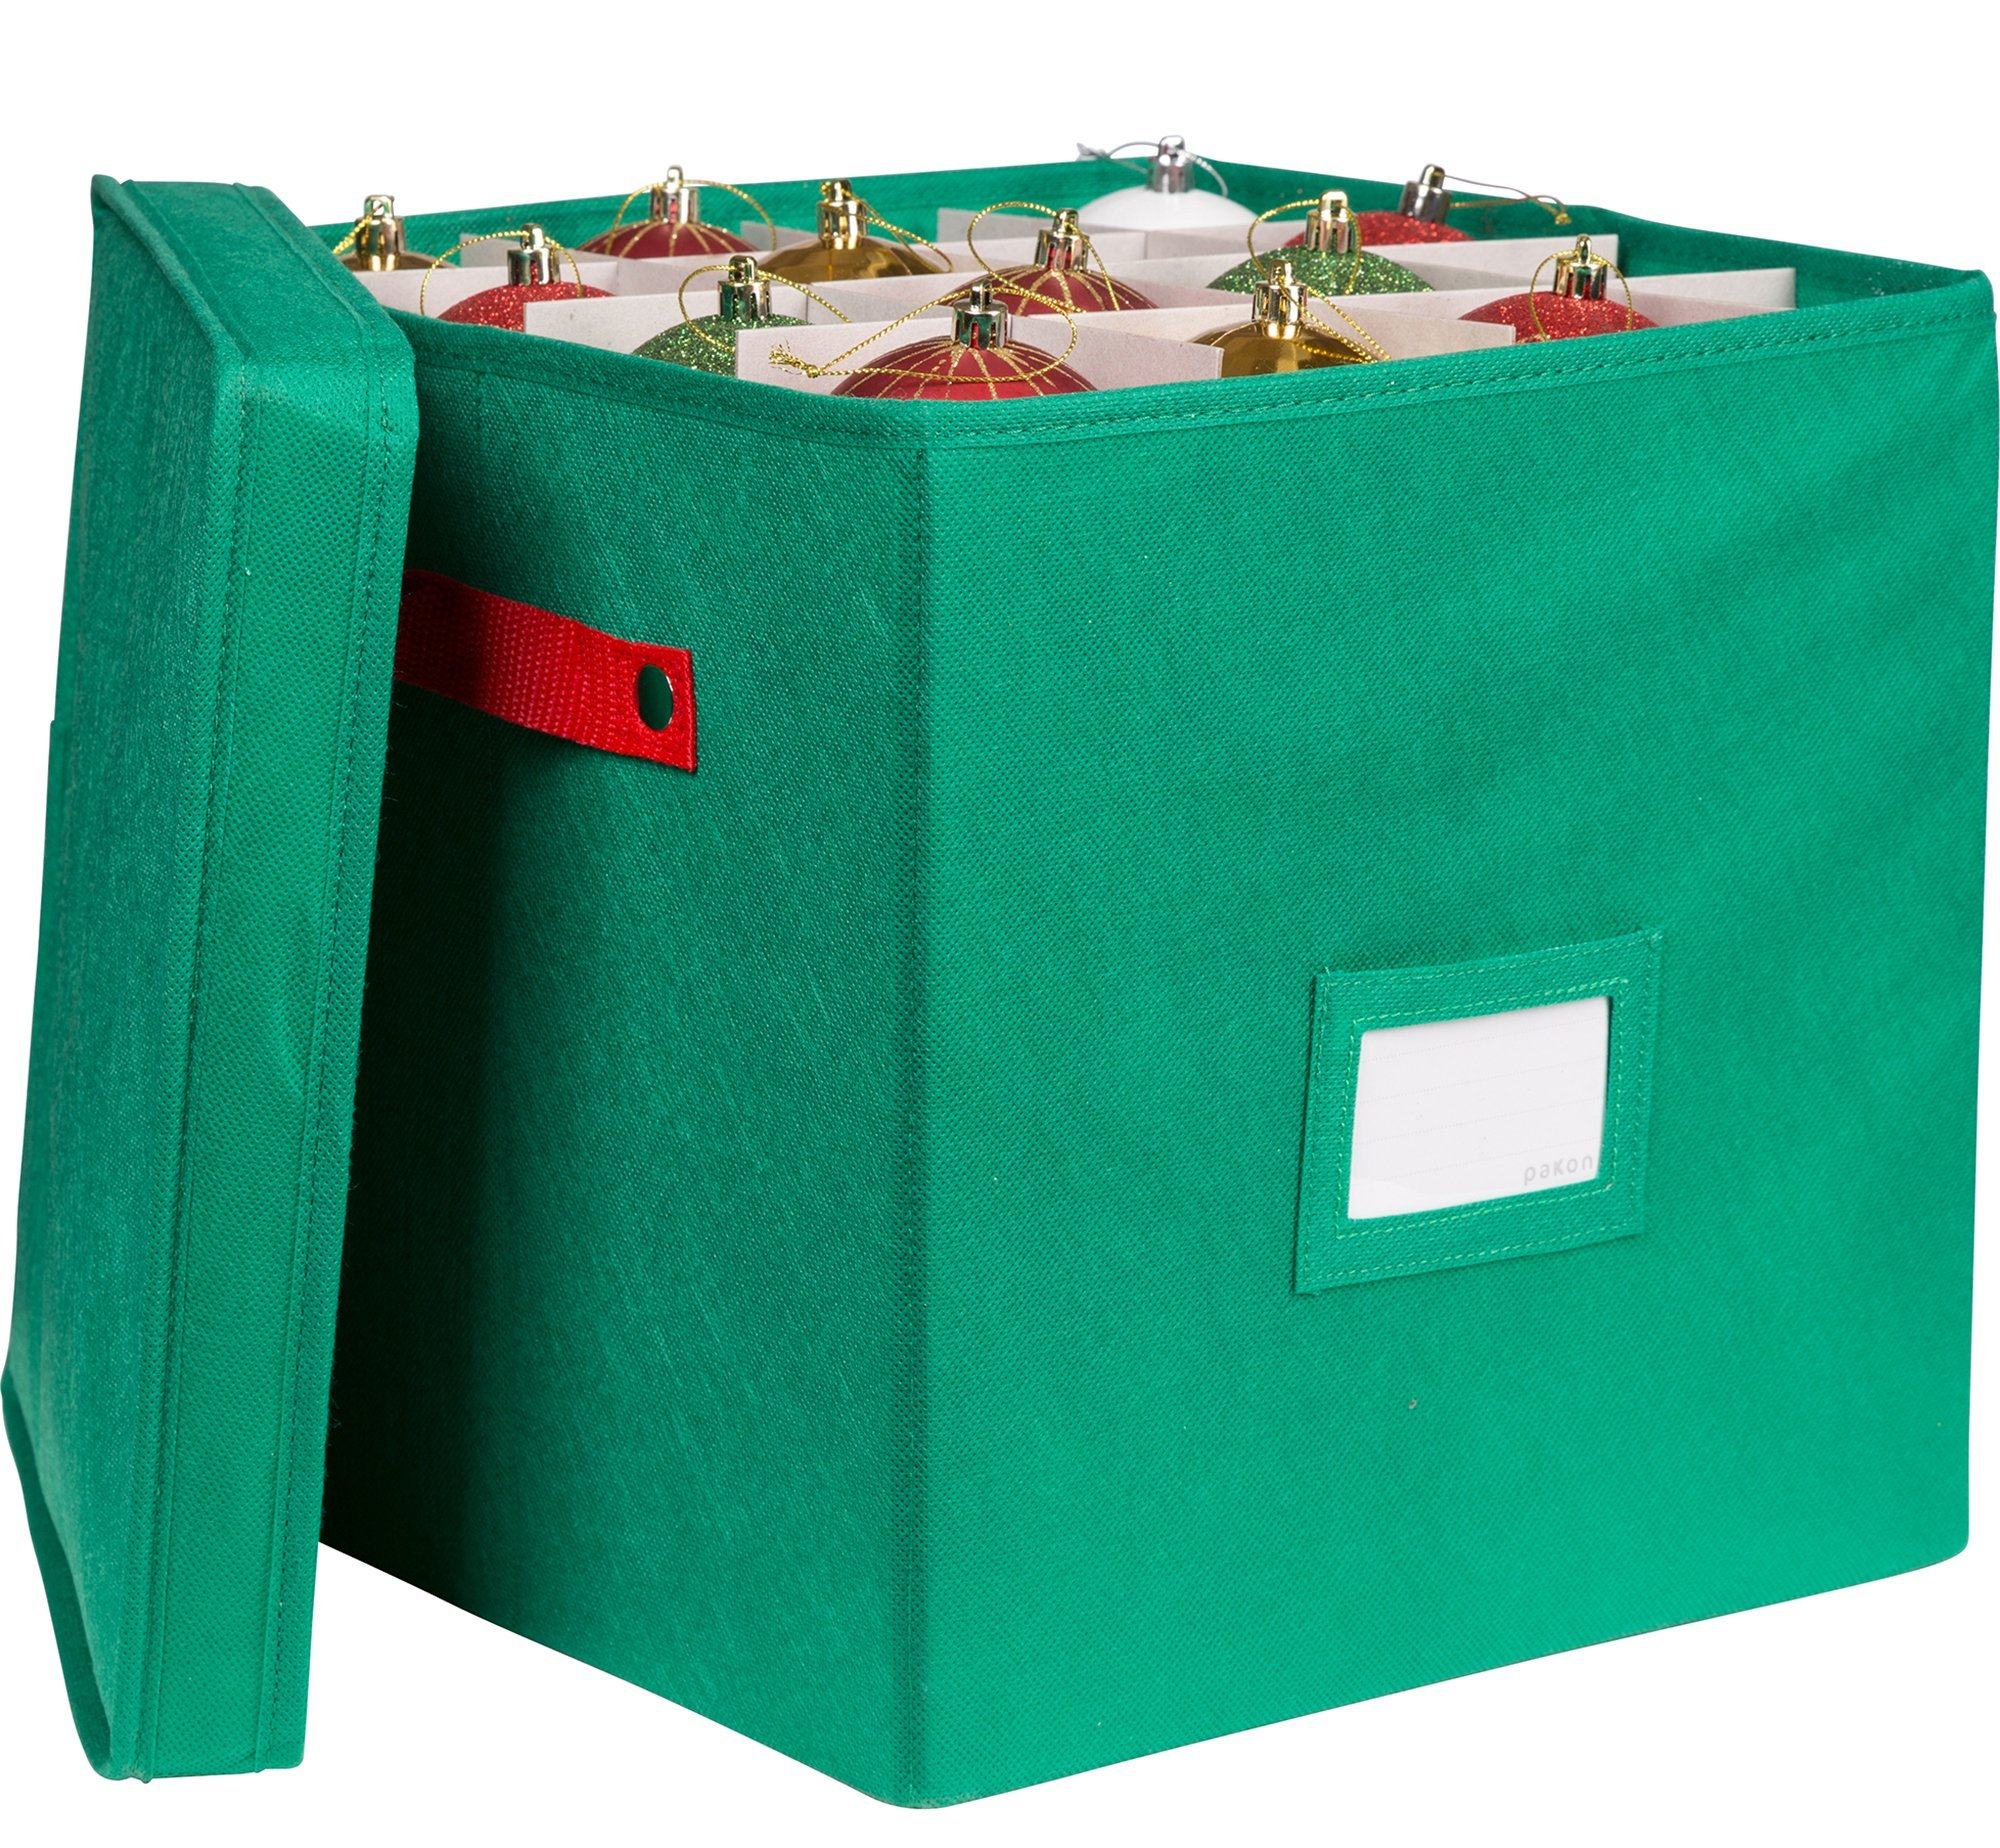 Pakkin Christmas Ornaments Storage Box with Lid and 4 Adjustable Layers - Fits 64 Round Ornaments, 12 x 12 x 12–Inches, Green